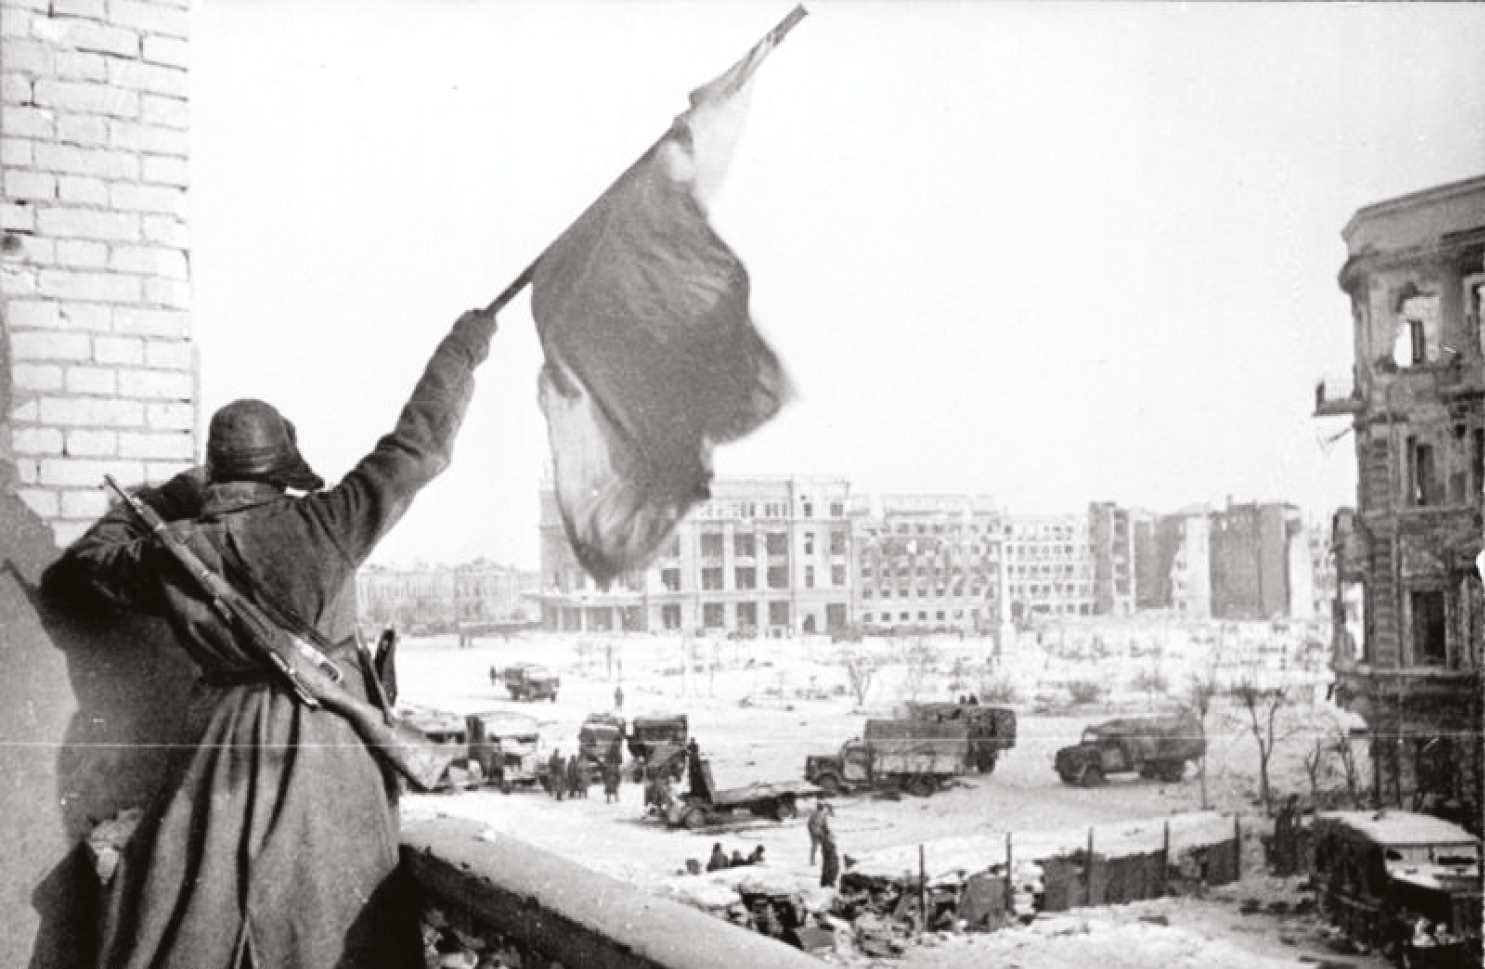 above Victory. A Soviet soldier waves the Red Flag over the ruins of Stalingrad.